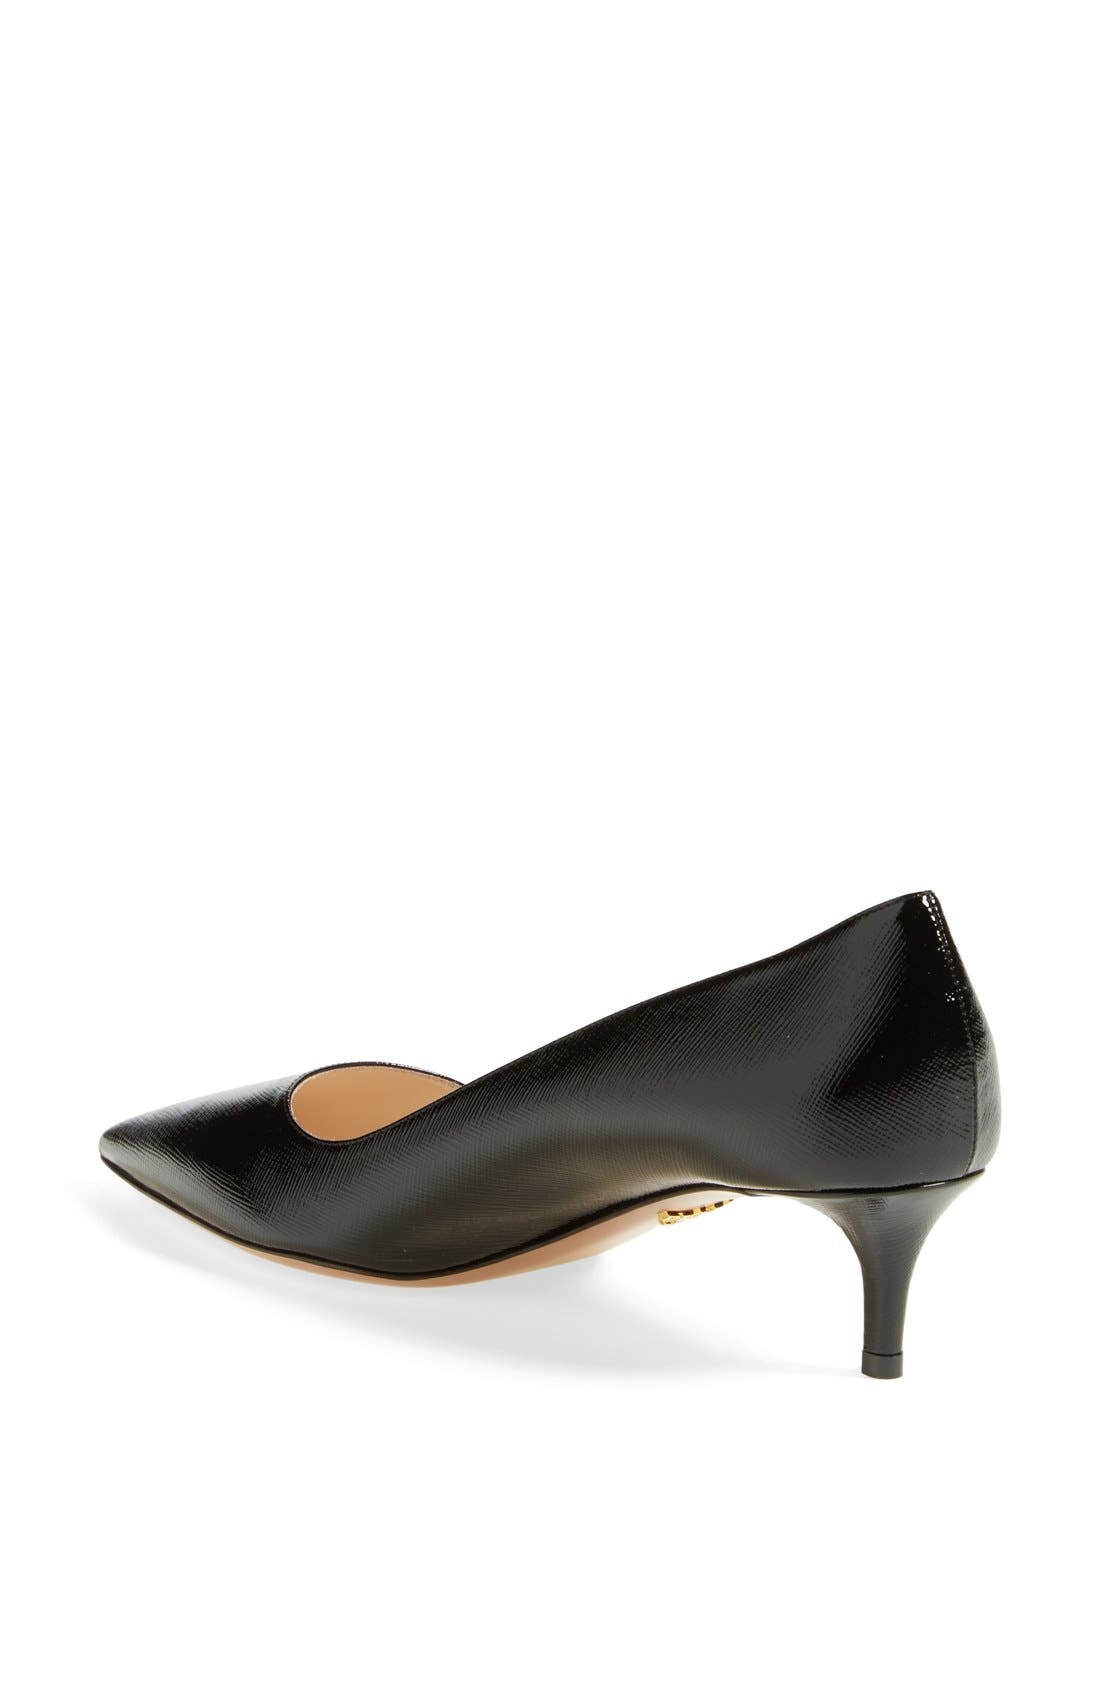 Pointy Toe Pump,                             Alternate thumbnail 2, color,                             001